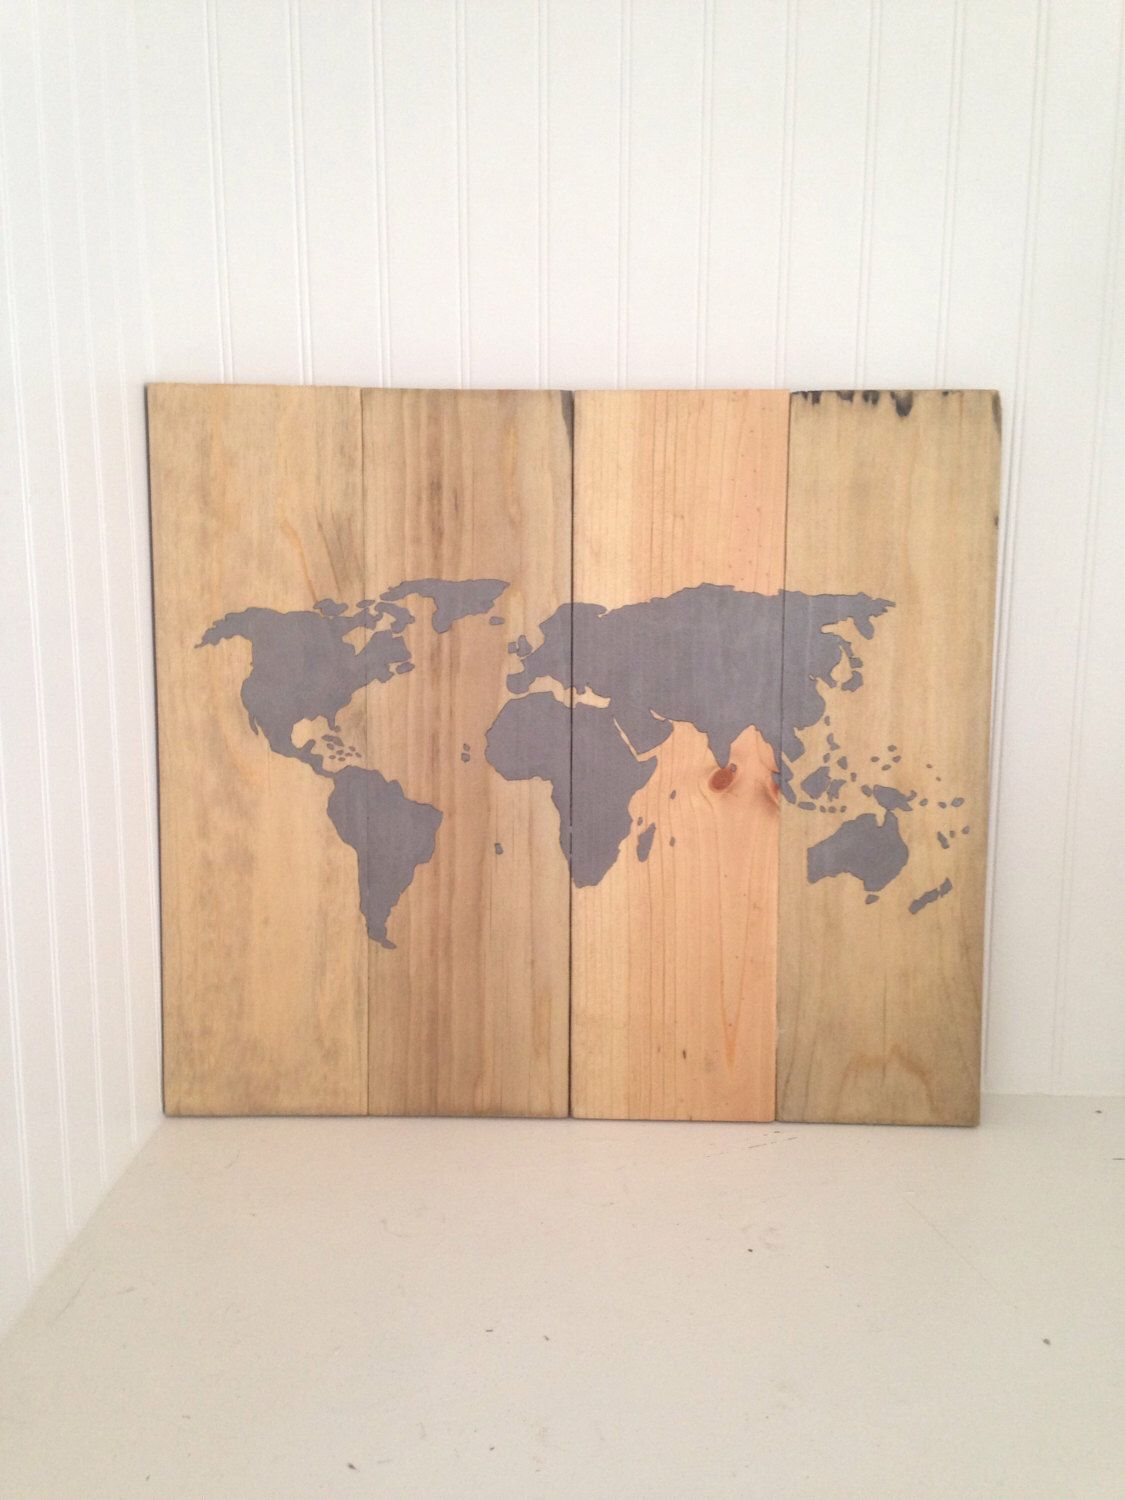 World map sign world map decor gold decor silver decor rustic world map sign world map decor gold decor silver decor rustic decor map decor metallic hanging art wood sign wooden sign dorm decor by gumiabroncs Image collections